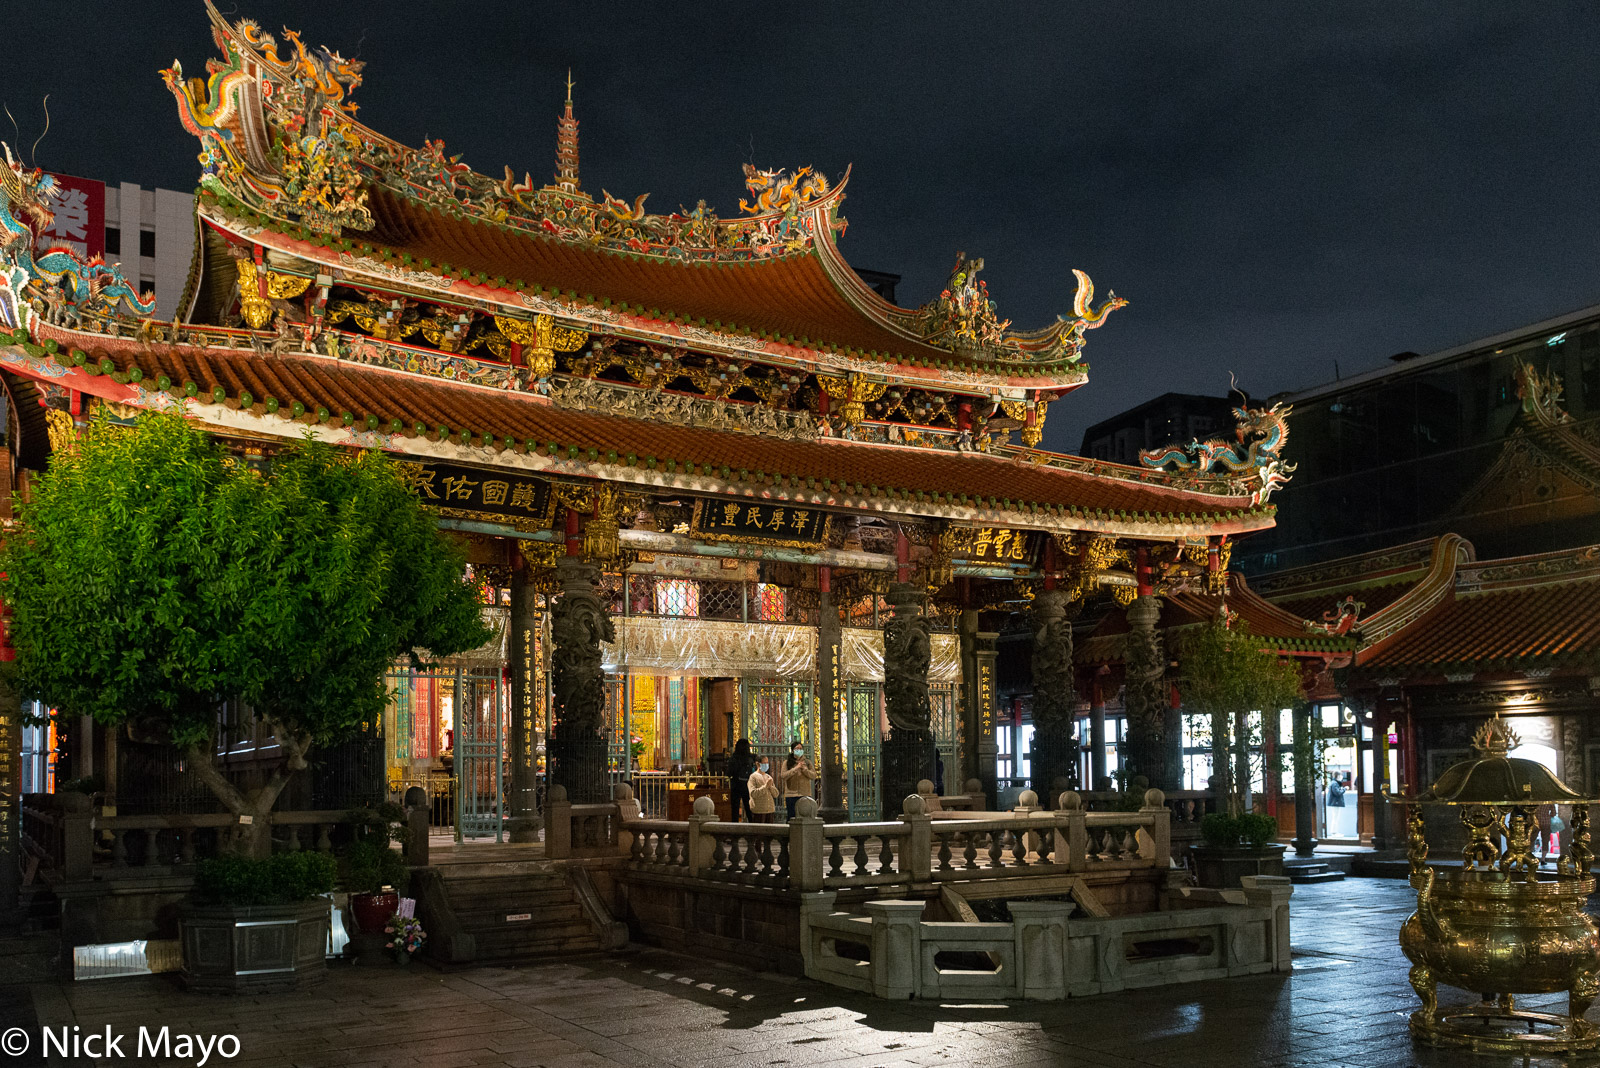 A night view of the Lungshan temple with its ornate roof in the Wanhua district of Taipei.